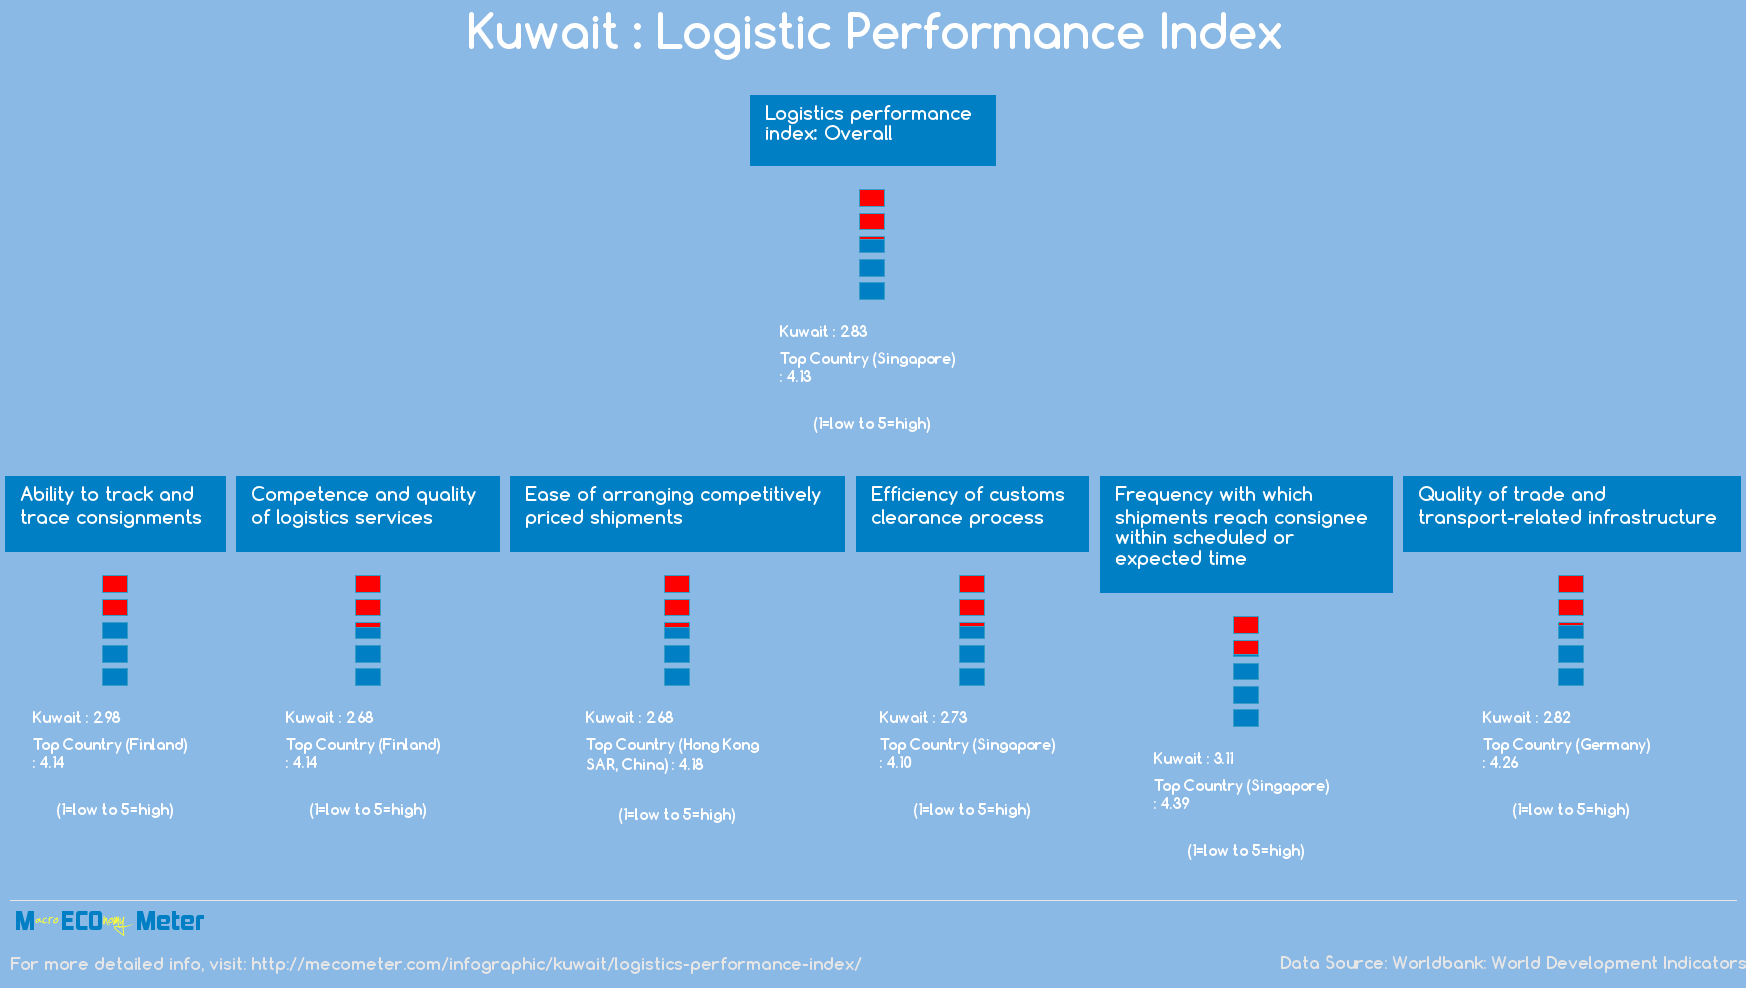 Kuwait : Logistic Performance Index